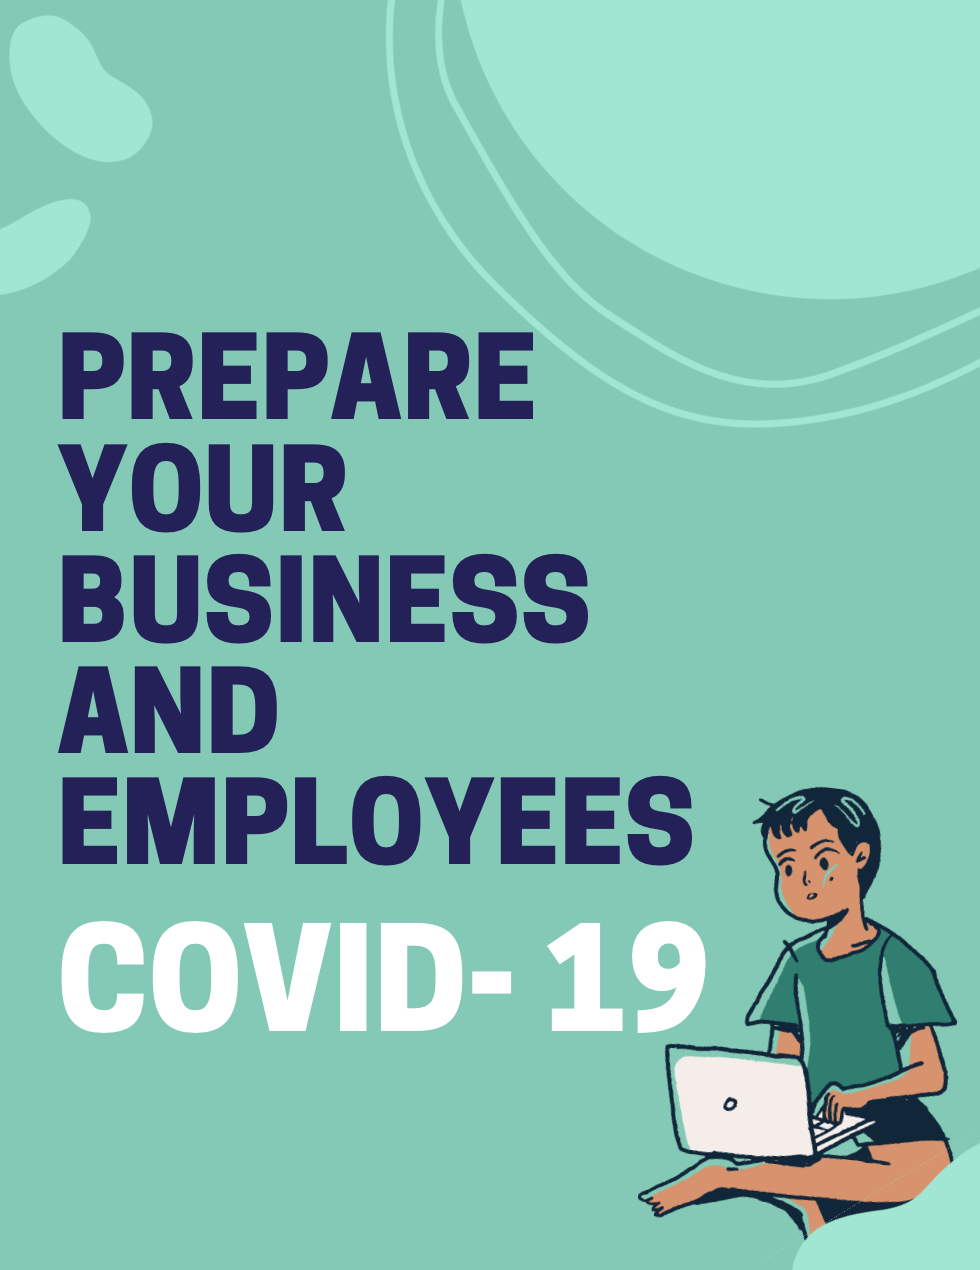 prepare your business and employees for COVID-19